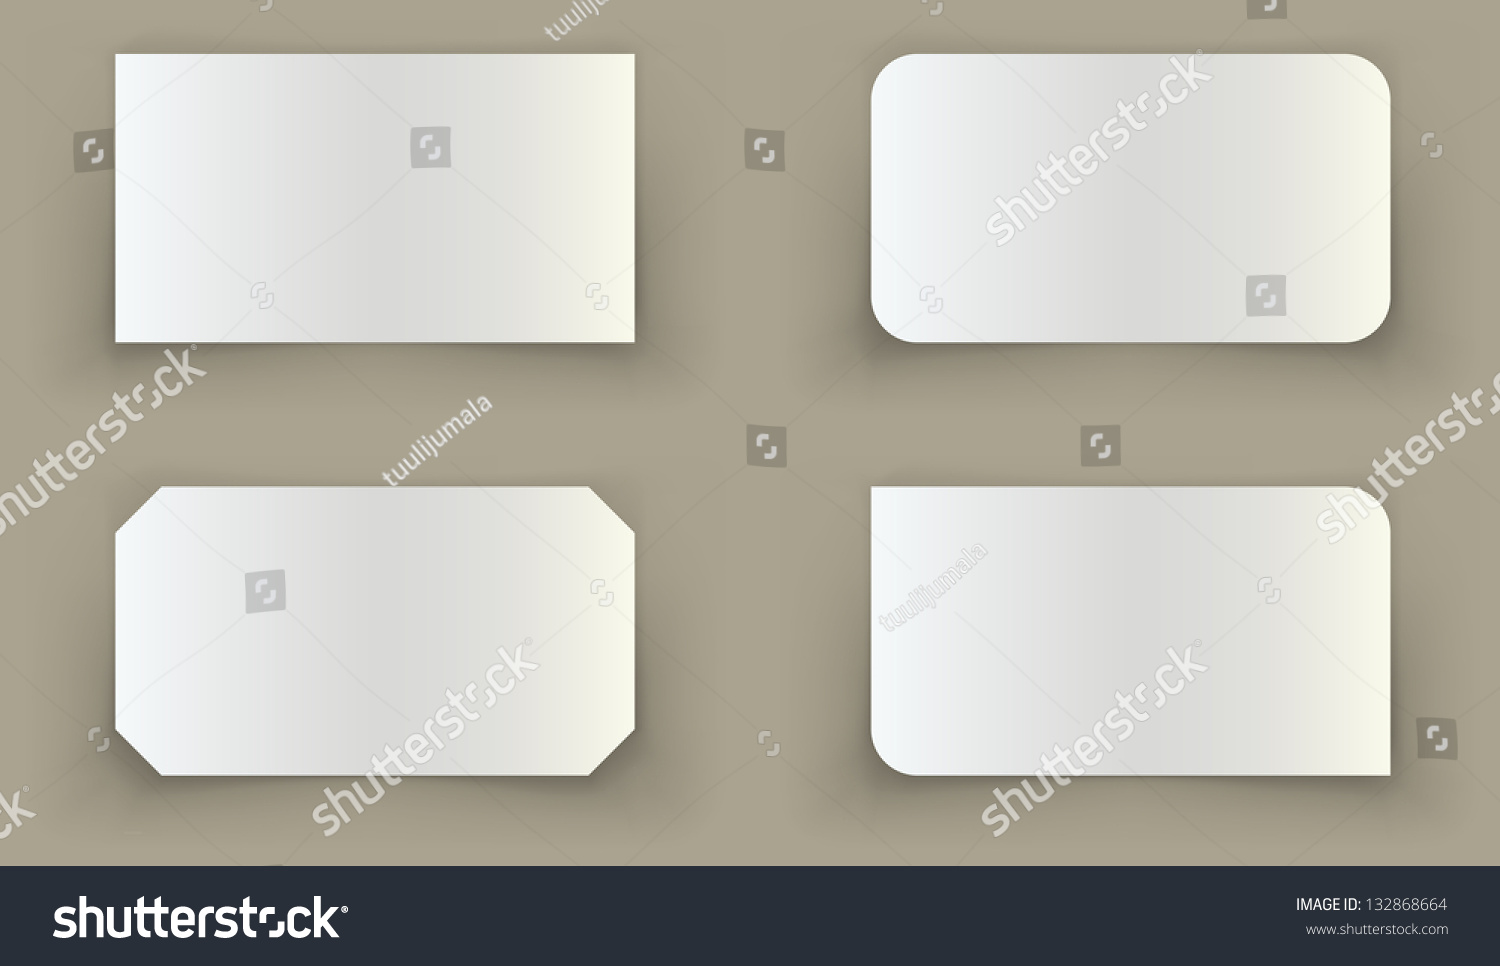 Standard business card shadow curled edges stock vector 132868664 standard business card shadow curled edges illusion template easy to change background color pronofoot35fo Choice Image